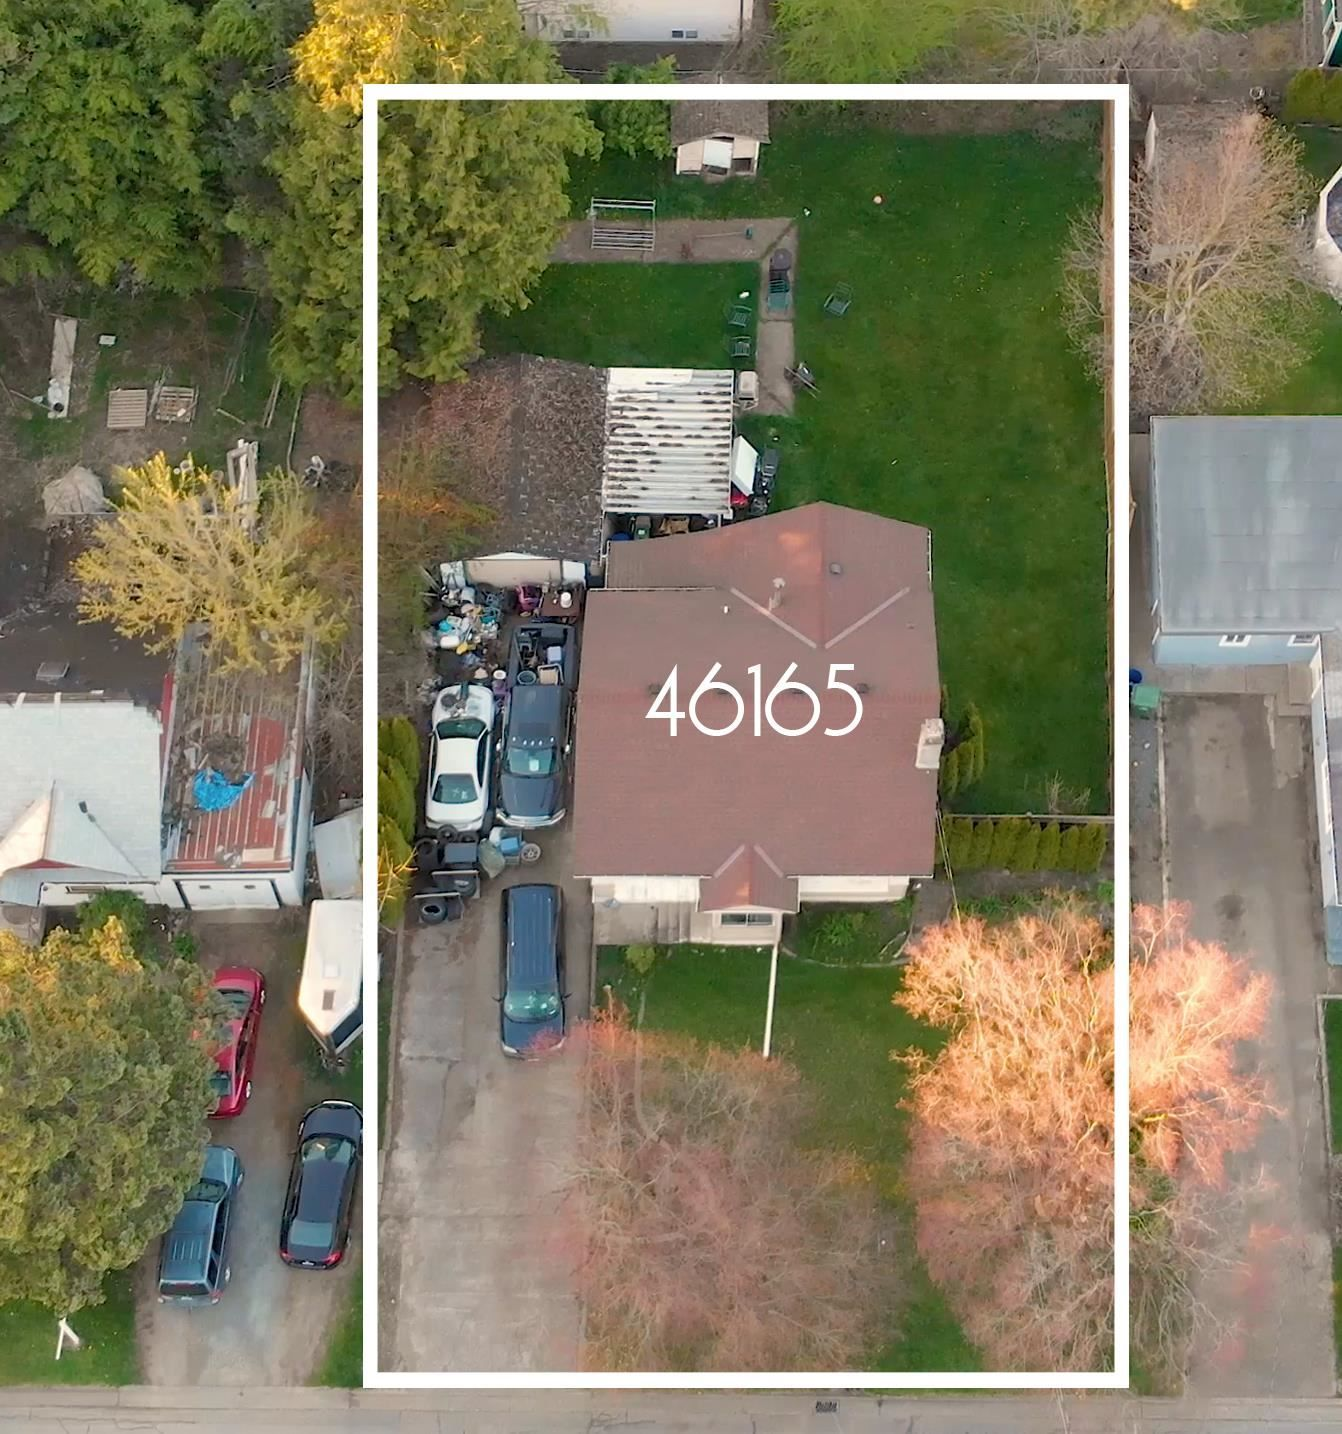 Main Photo: 46165 LEWIS AVENUE in Chilliwack: Chilliwack N Yale-Well House for sale : MLS®# R2603920